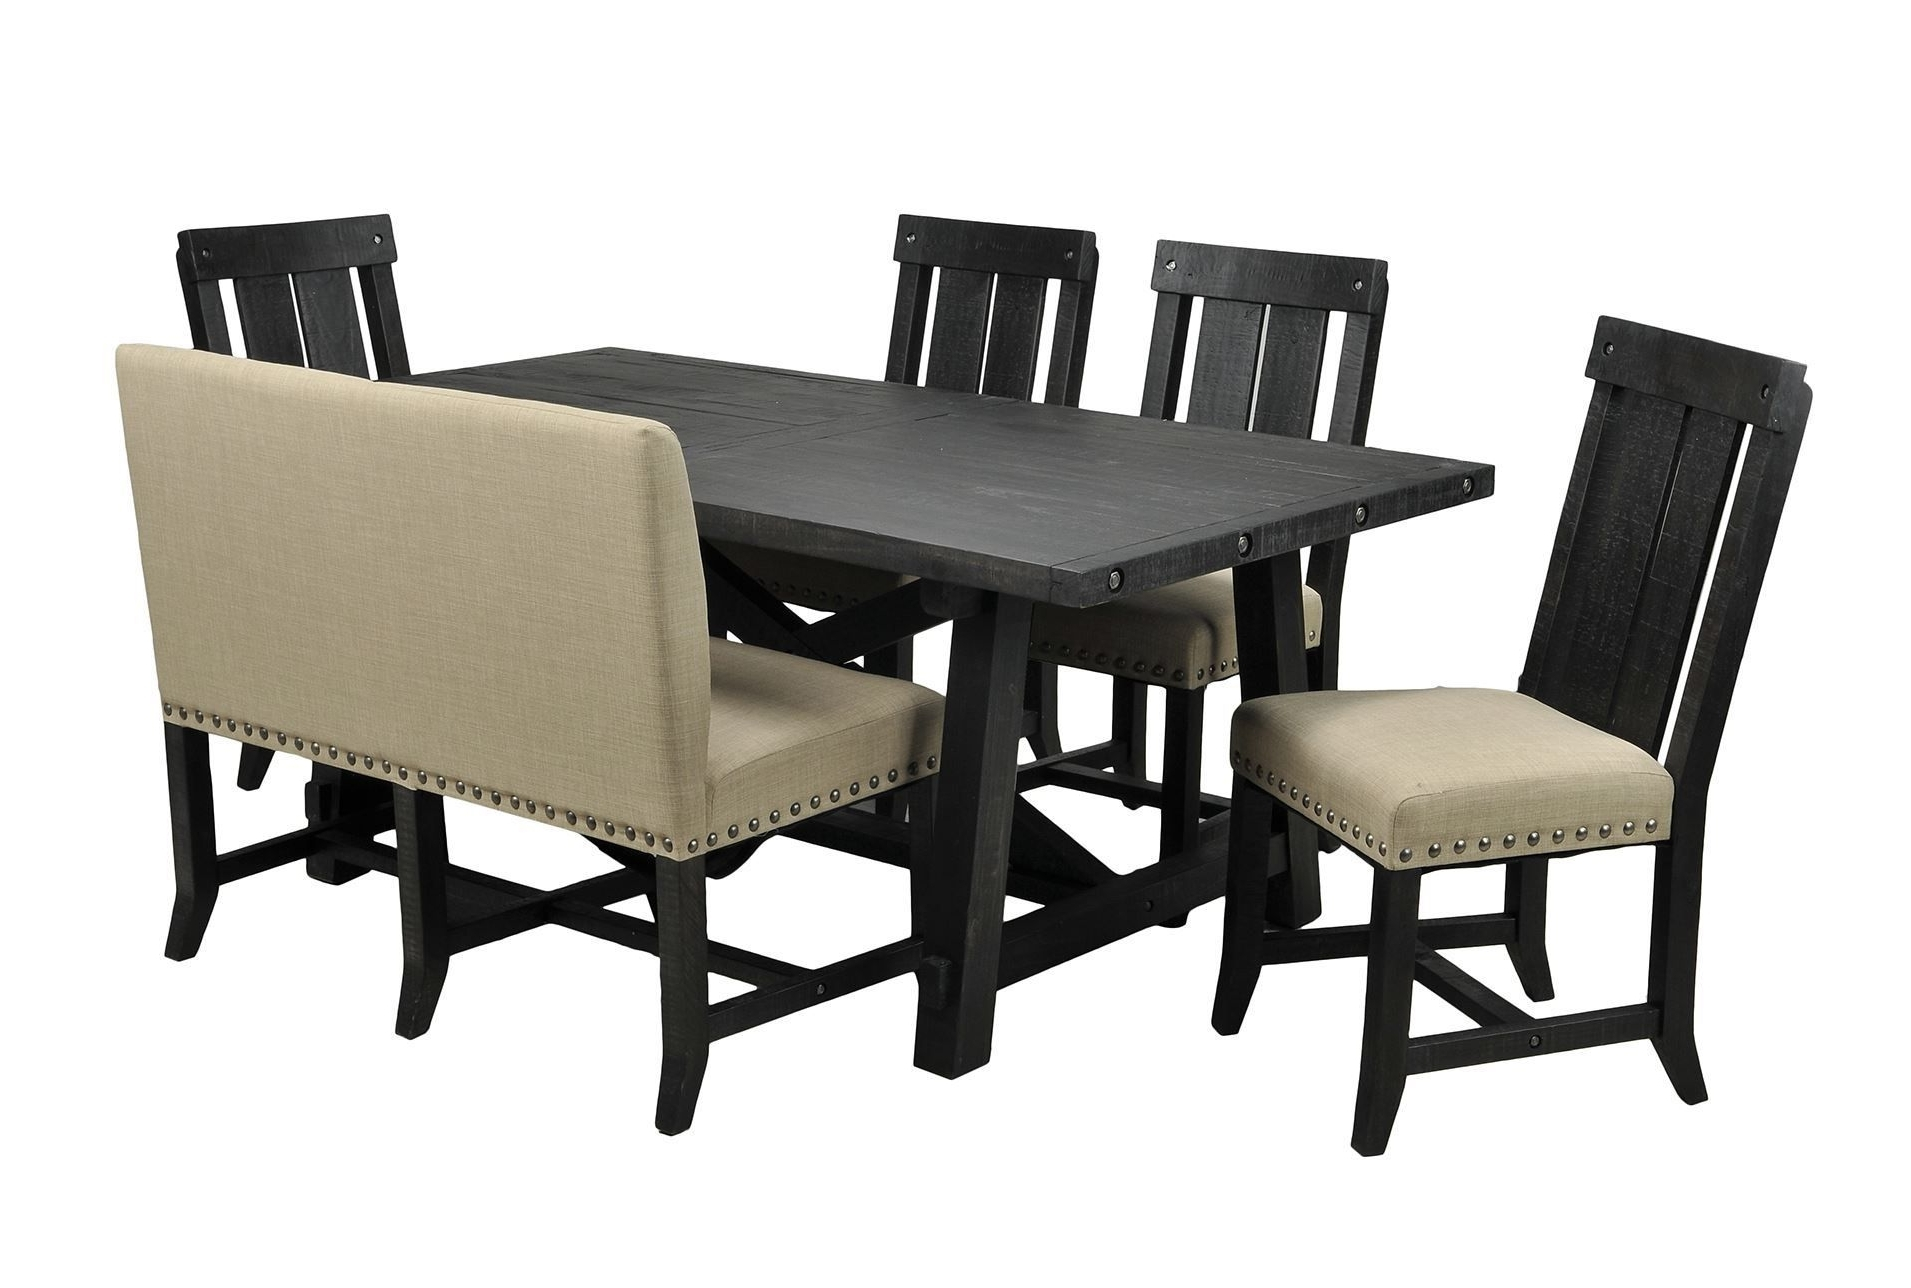 Jaxon 6 Piece Rectangle Dining Set W/bench & Wood Chairs, Café With Best And Newest Jaxon 6 Piece Rectangle Dining Sets With Bench & Uph Chairs (View 12 of 25)